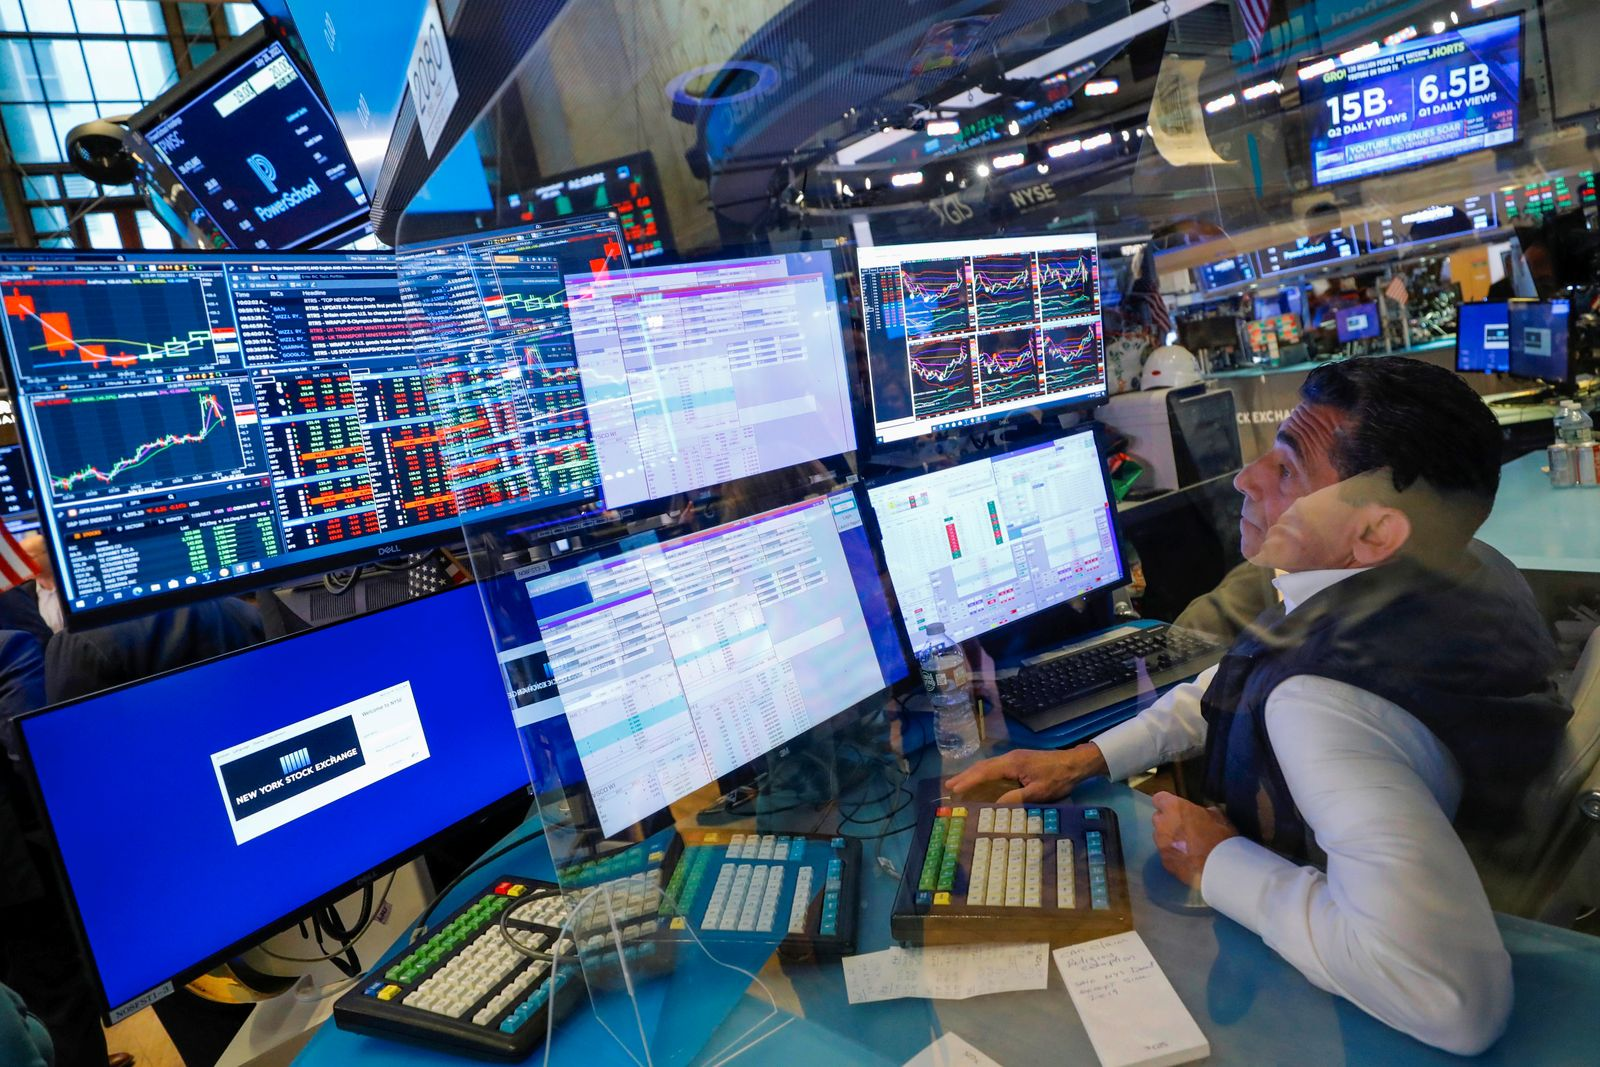 A trader works behind plexiglass on the floor of the New York Stock Exchange (NYSE) in New York City, New York